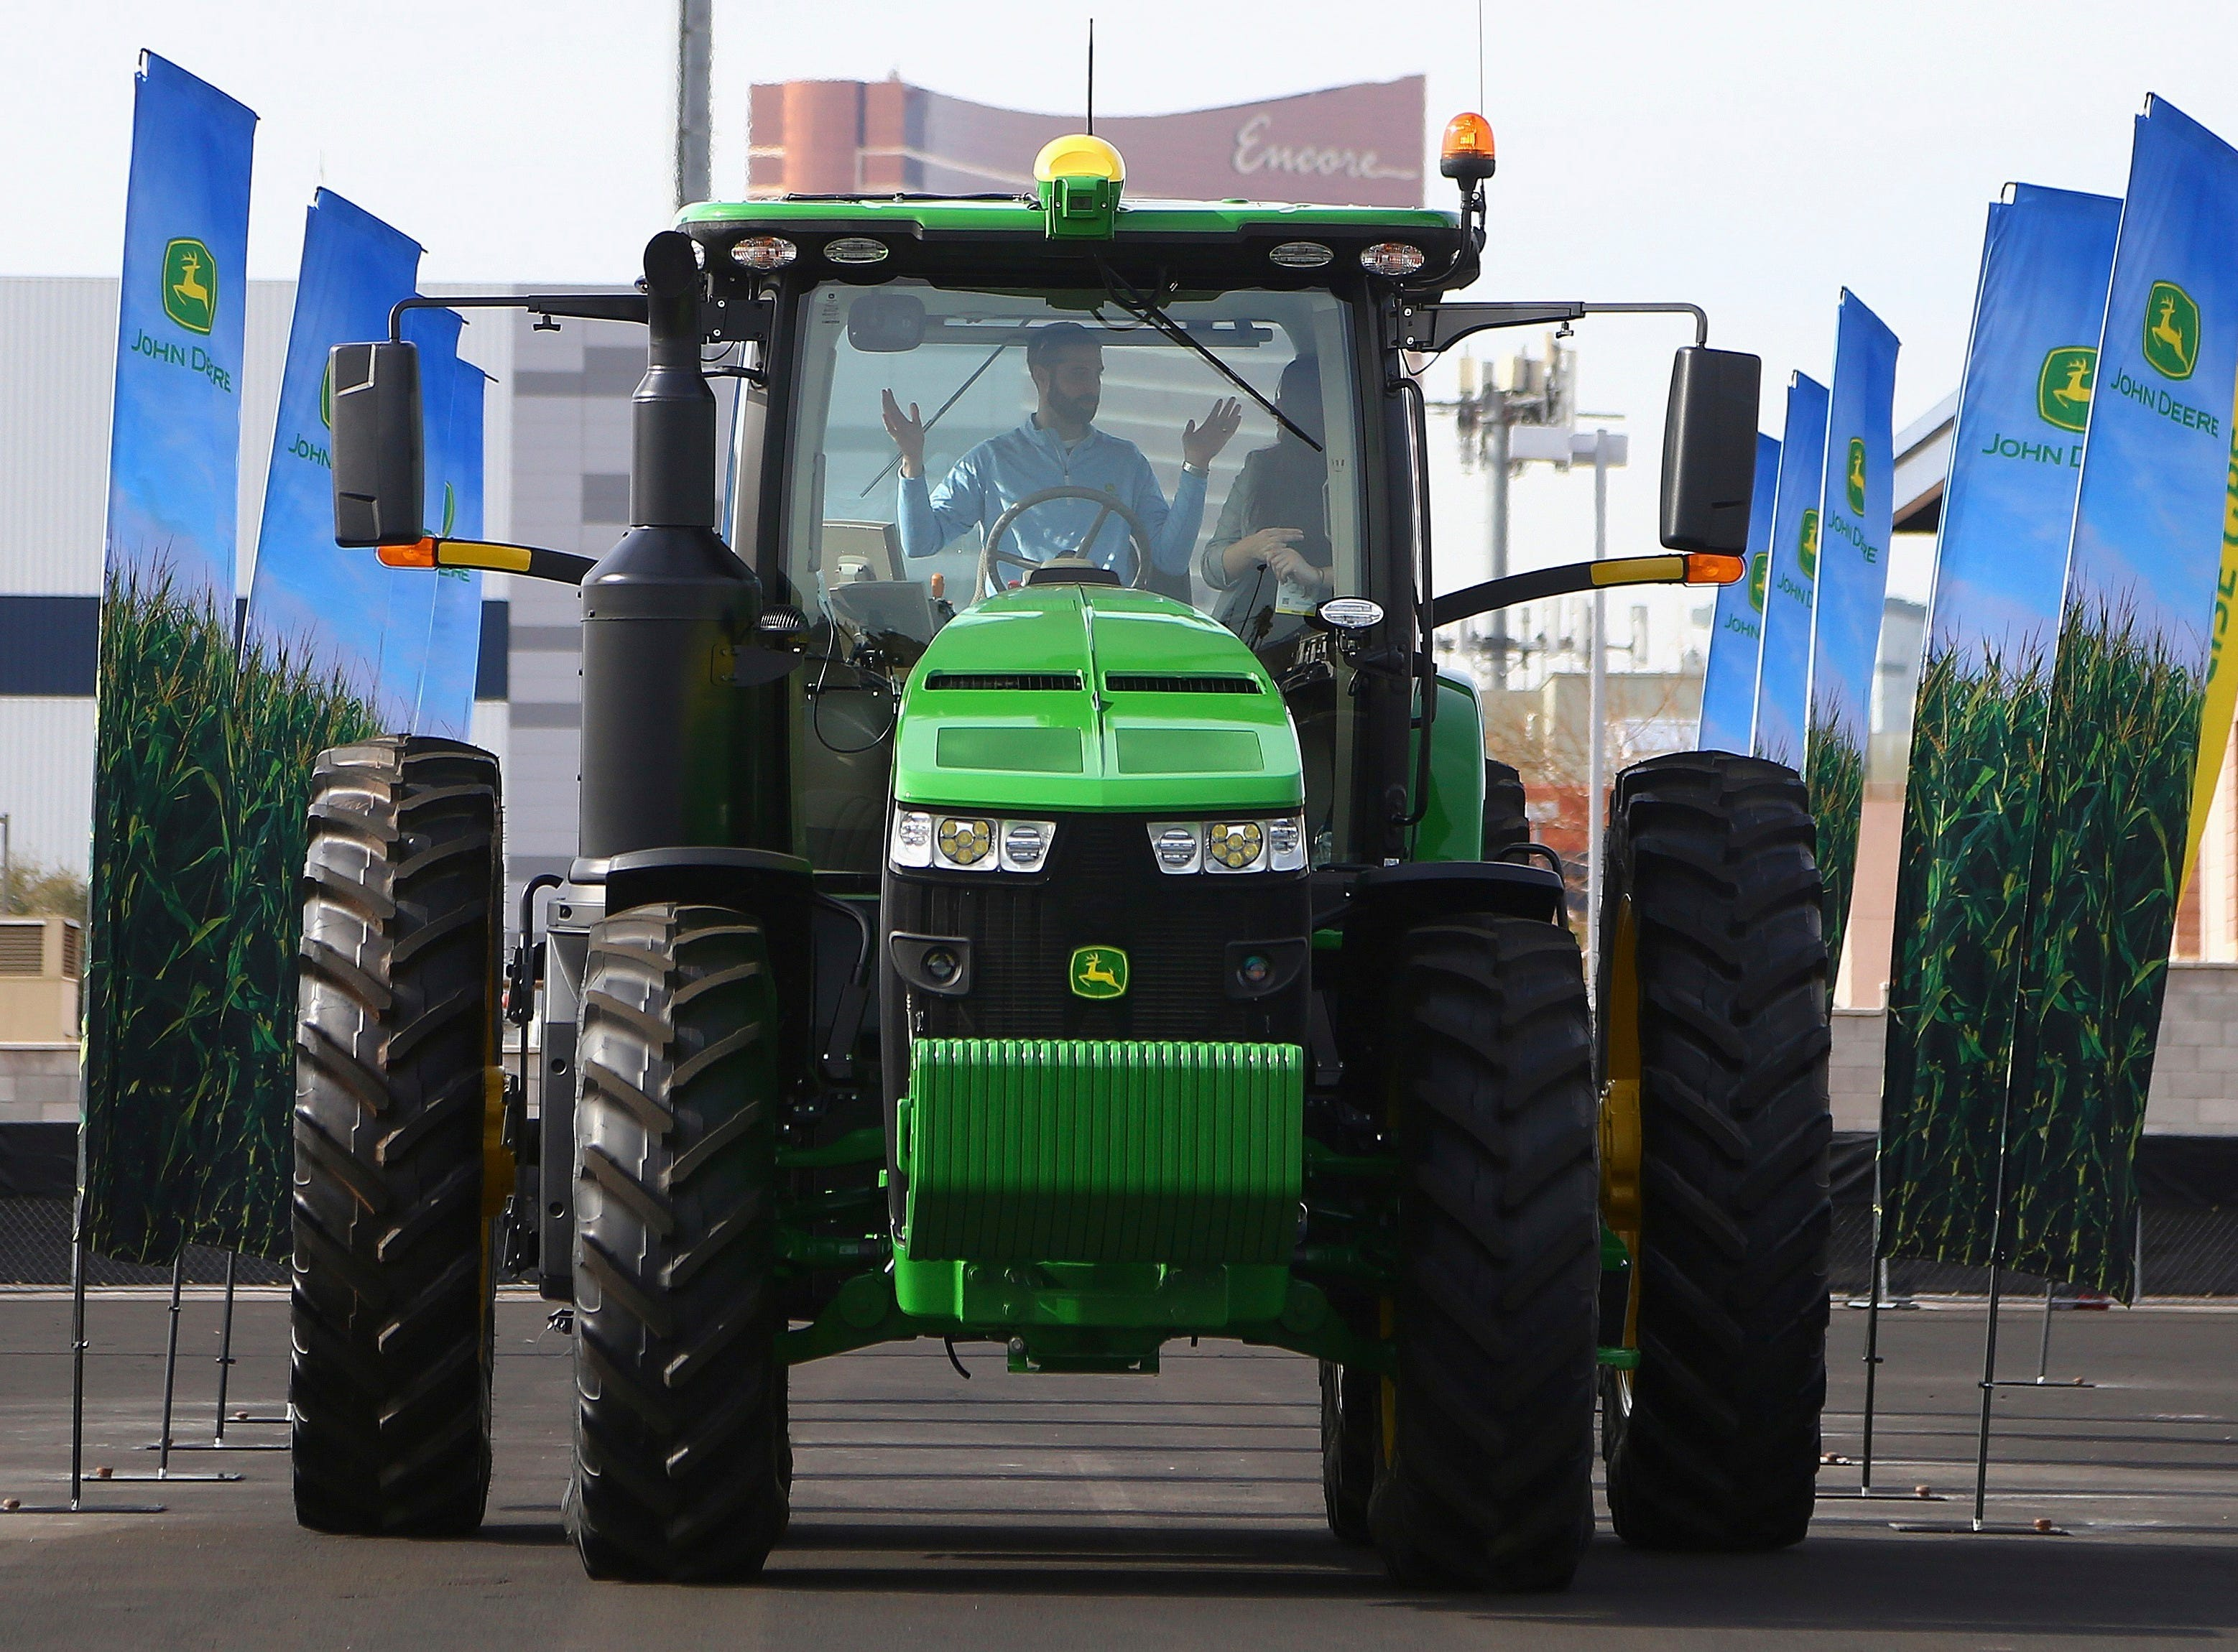 John Deere has hauled in a self-driving tractor aided by cameras with computer-vision technology to track the self-driving precision and program the route to be driven, shown at CES International on Tuesday, Jan. 8, 2019, in Las Vegas.